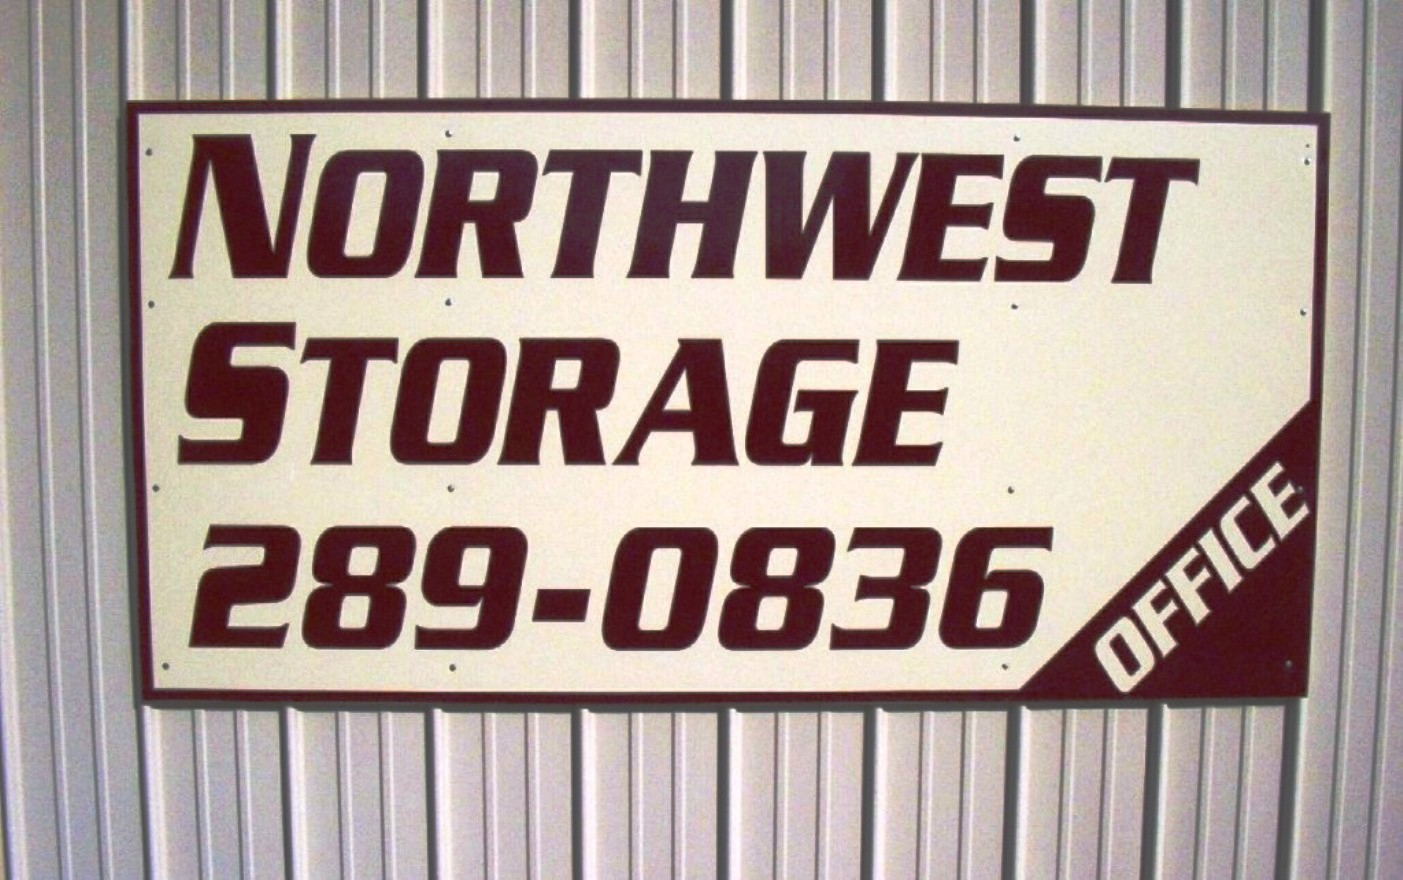 Sign for Northwest Storage